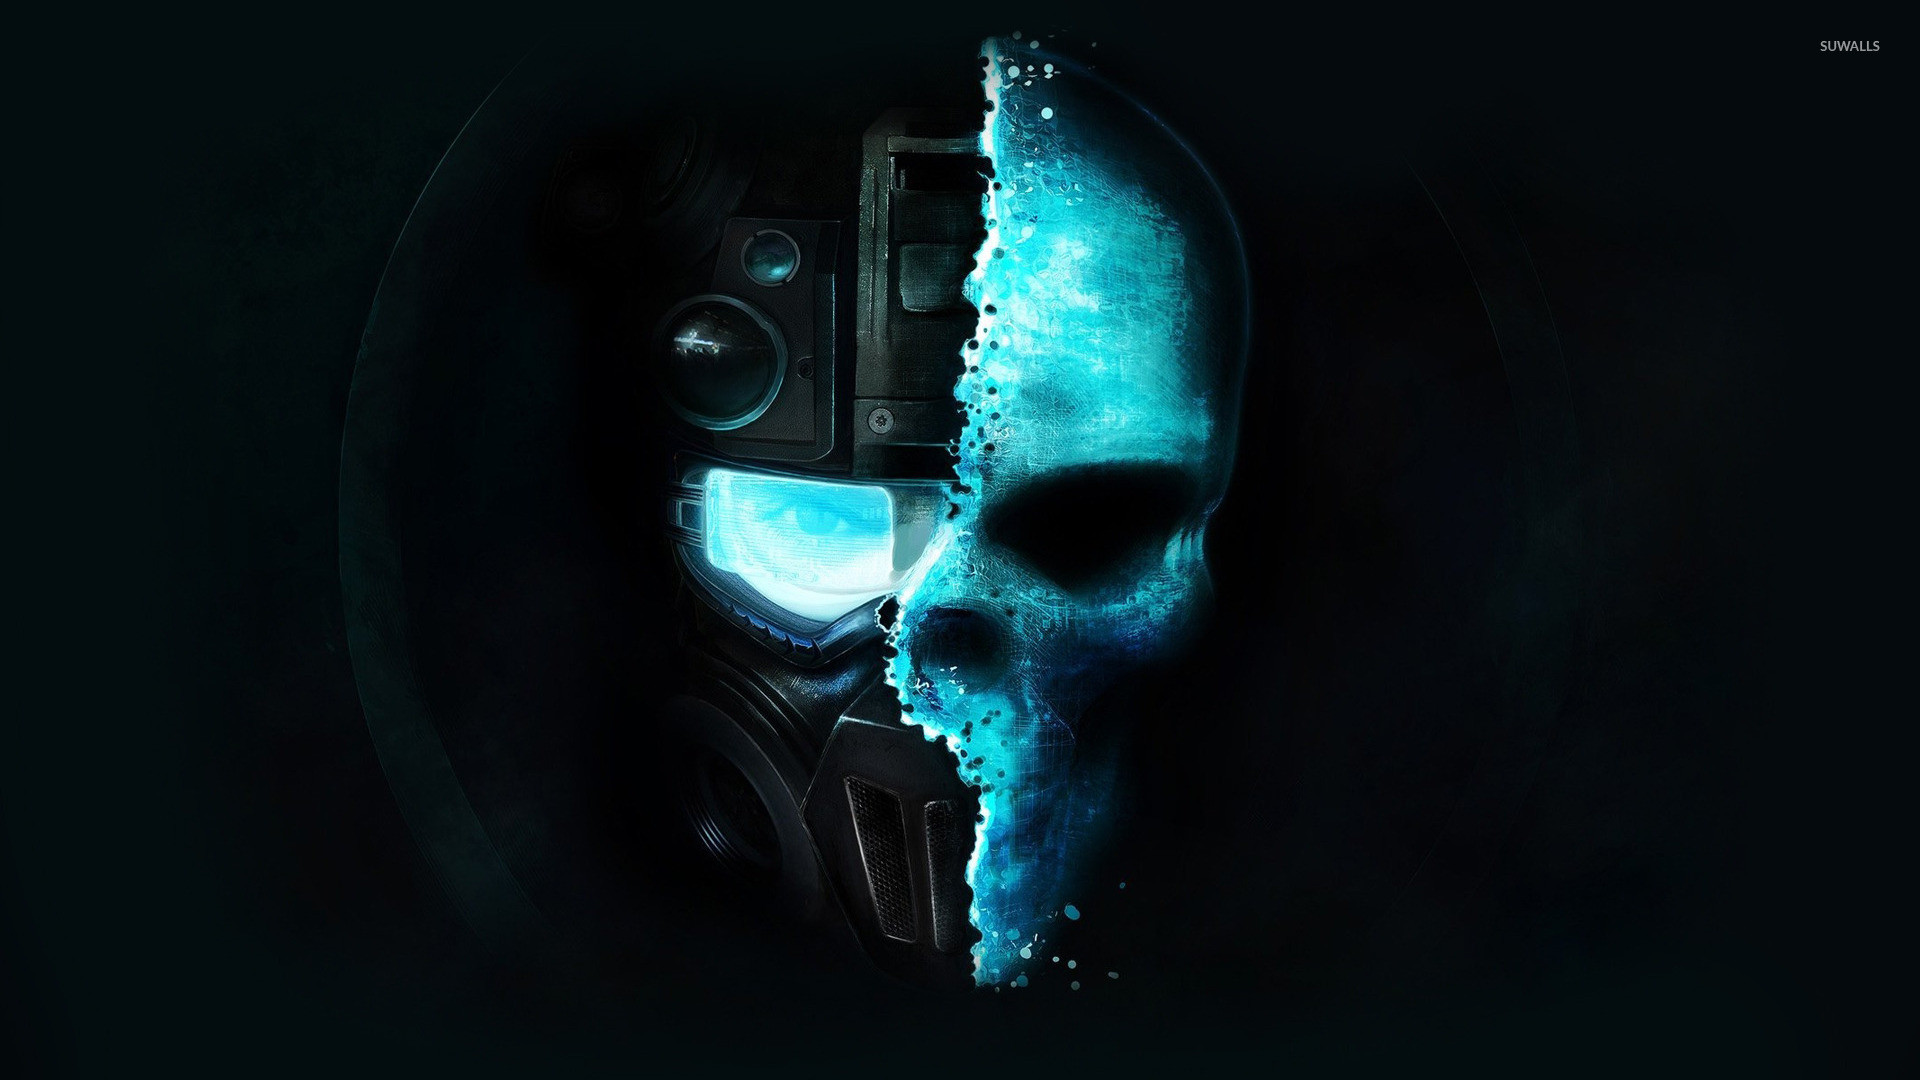 Skull Soldier Wallpaper Hd 69 Images